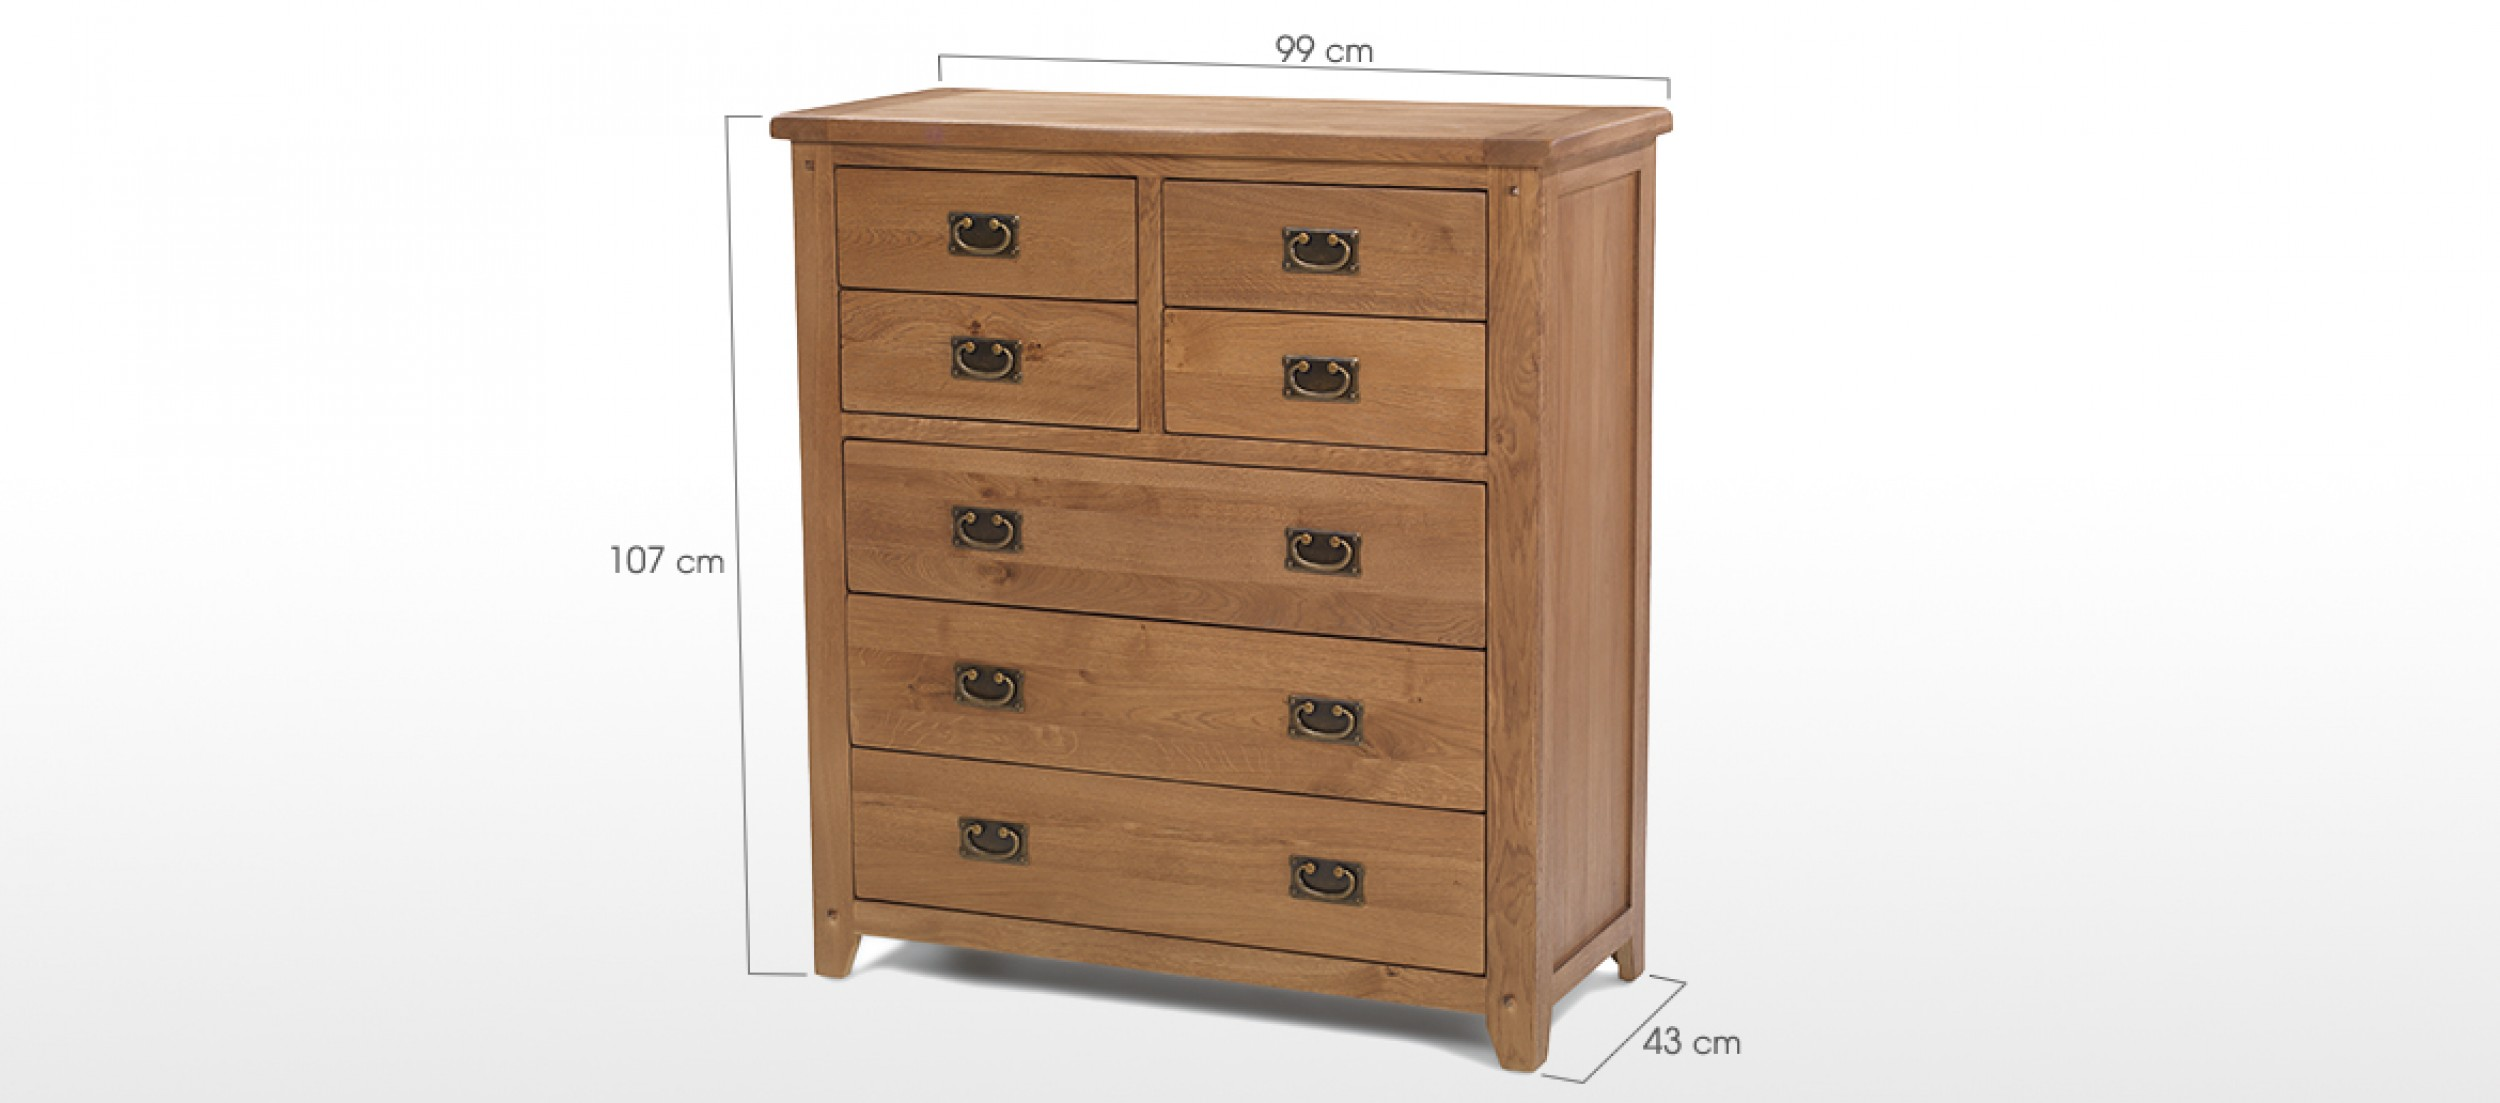 Rustic oak over chest of drawers quercus living